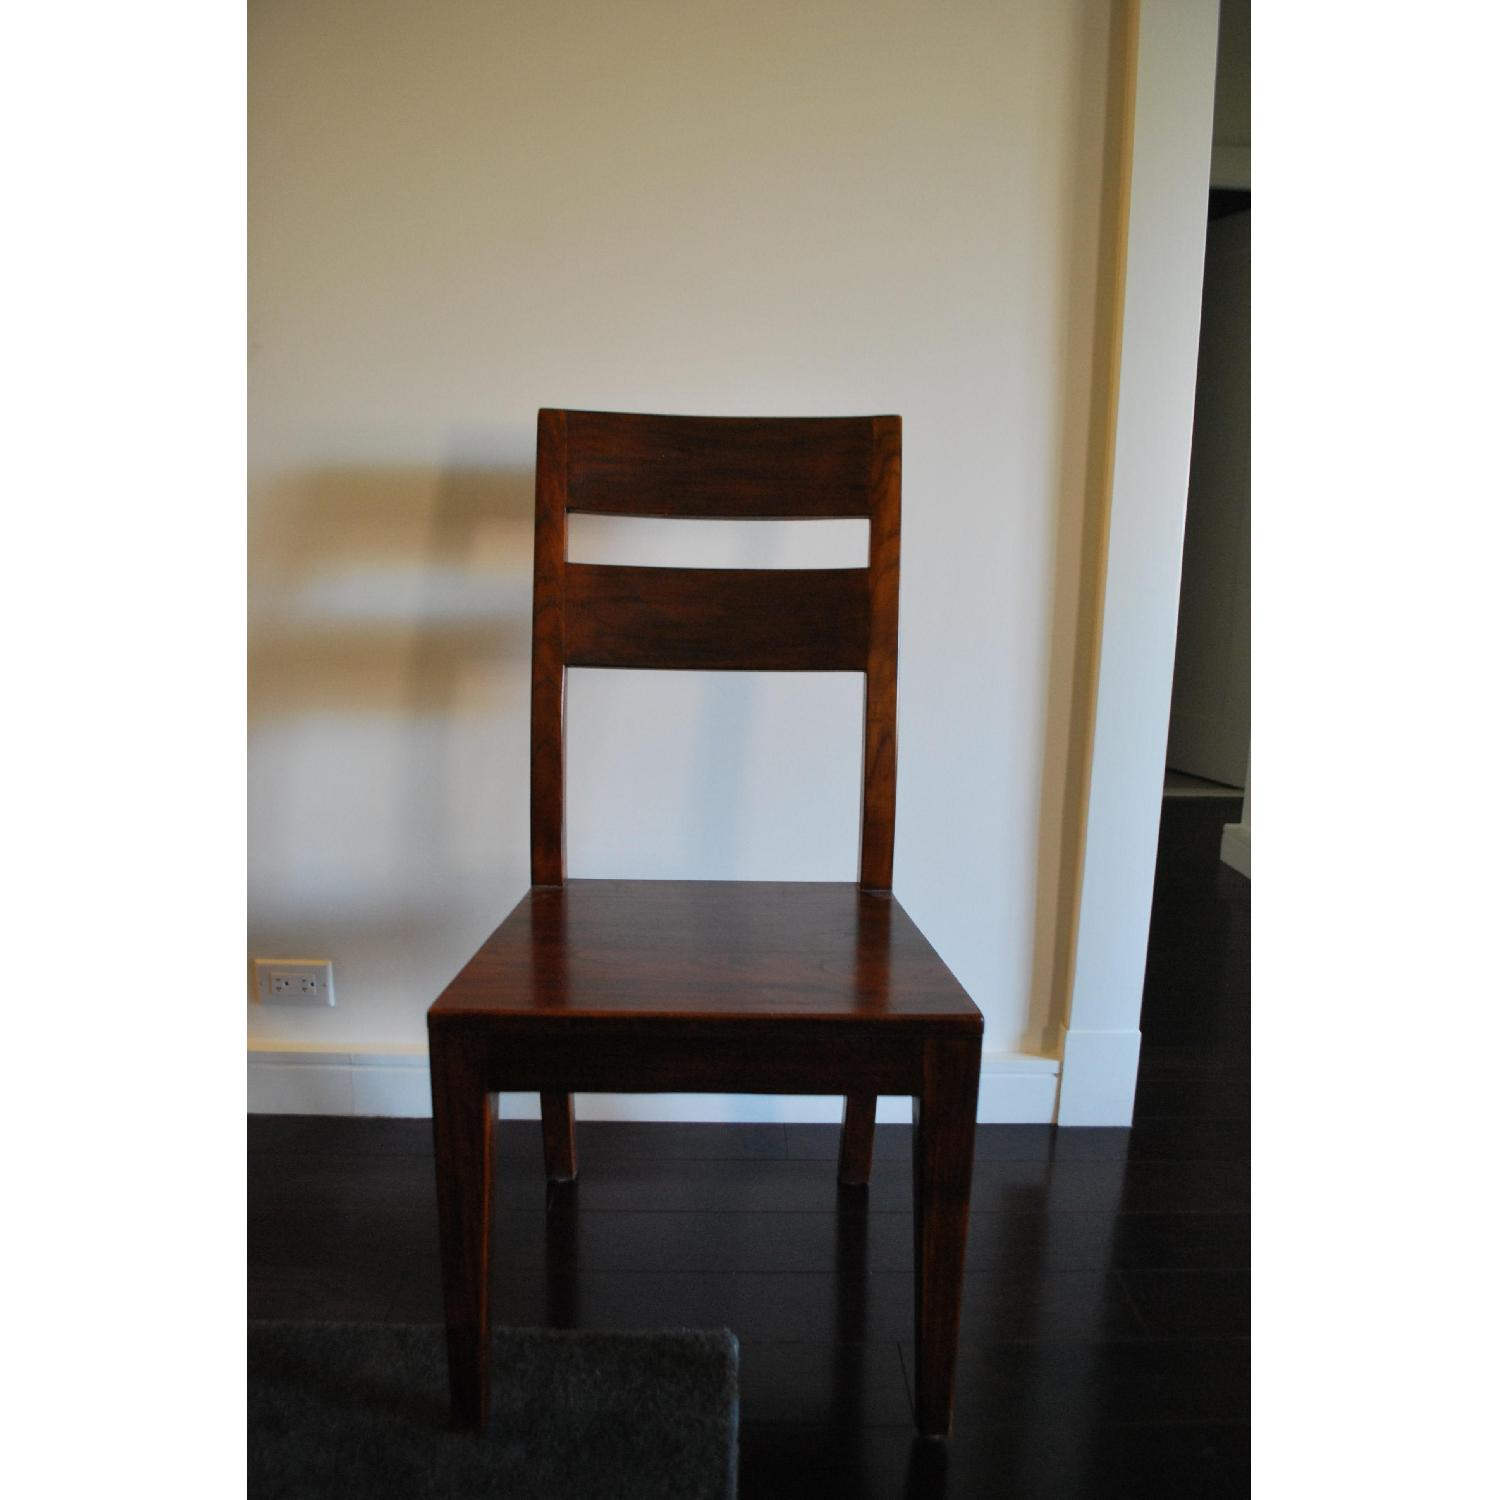 Crate & Barrel Basque Wood Dining Chairs - image-4